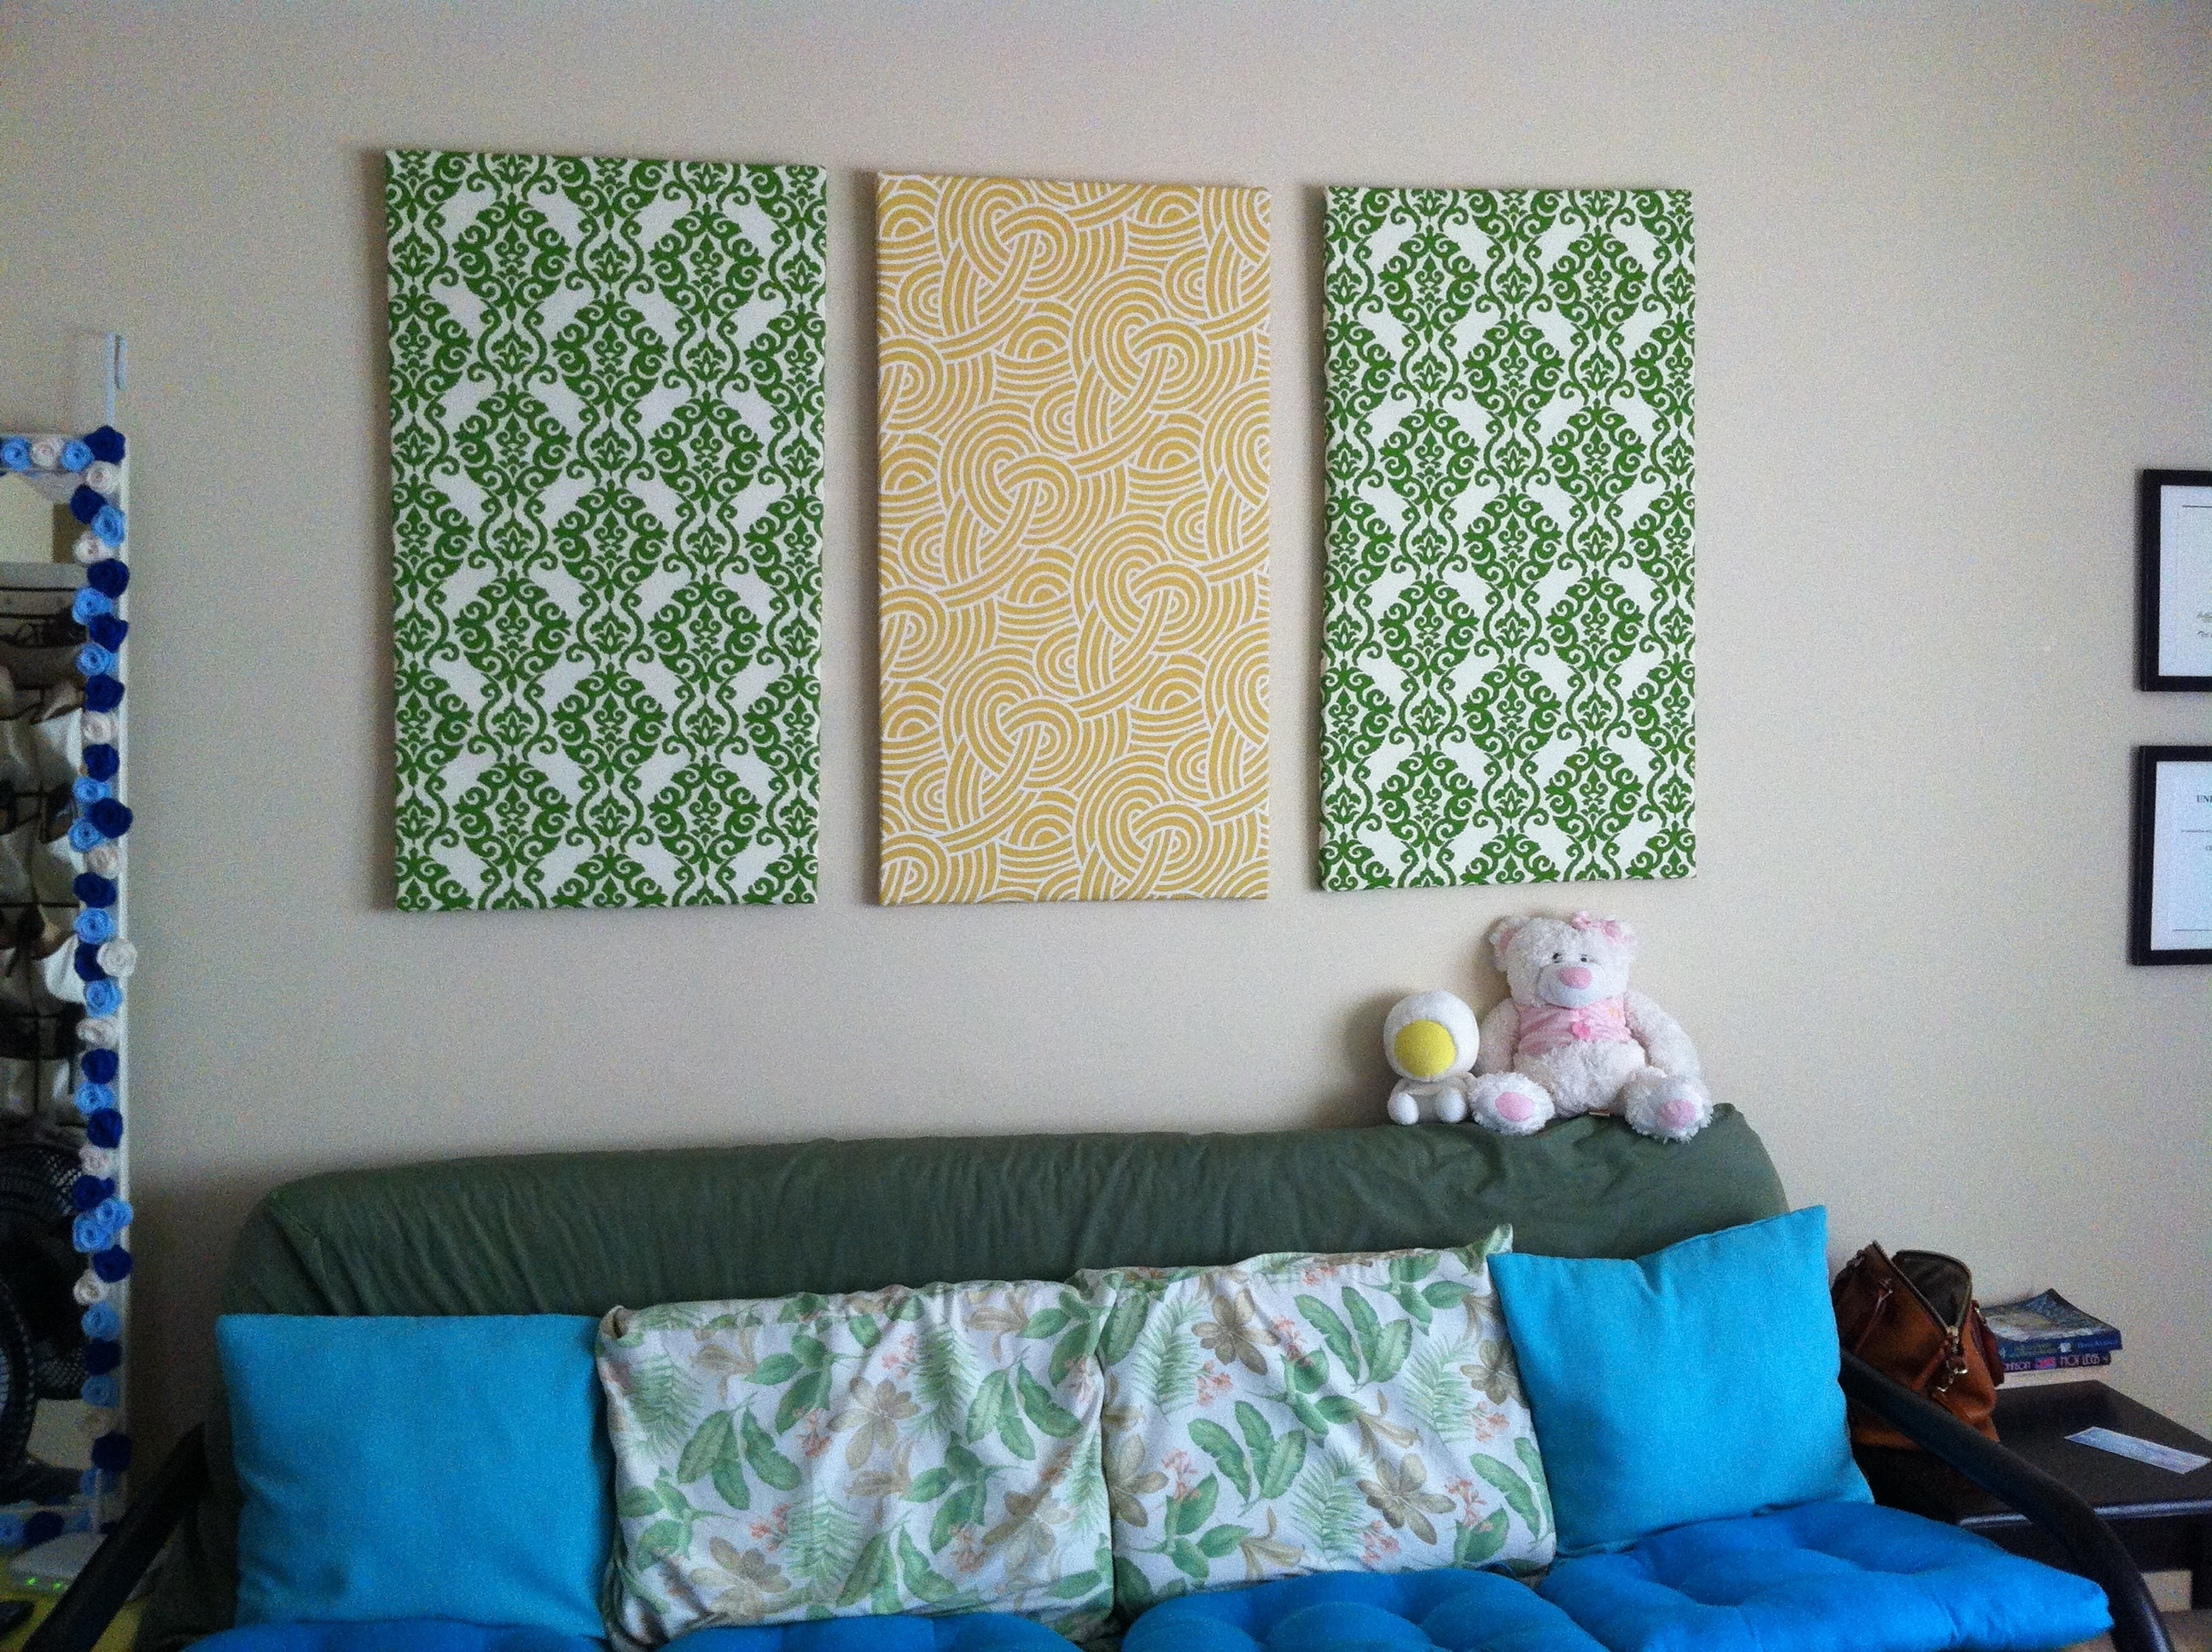 Art: Diy Fabric Wall Art Pertaining To Most Current Diy Fabric Covered Wall Art (View 12 of 15)